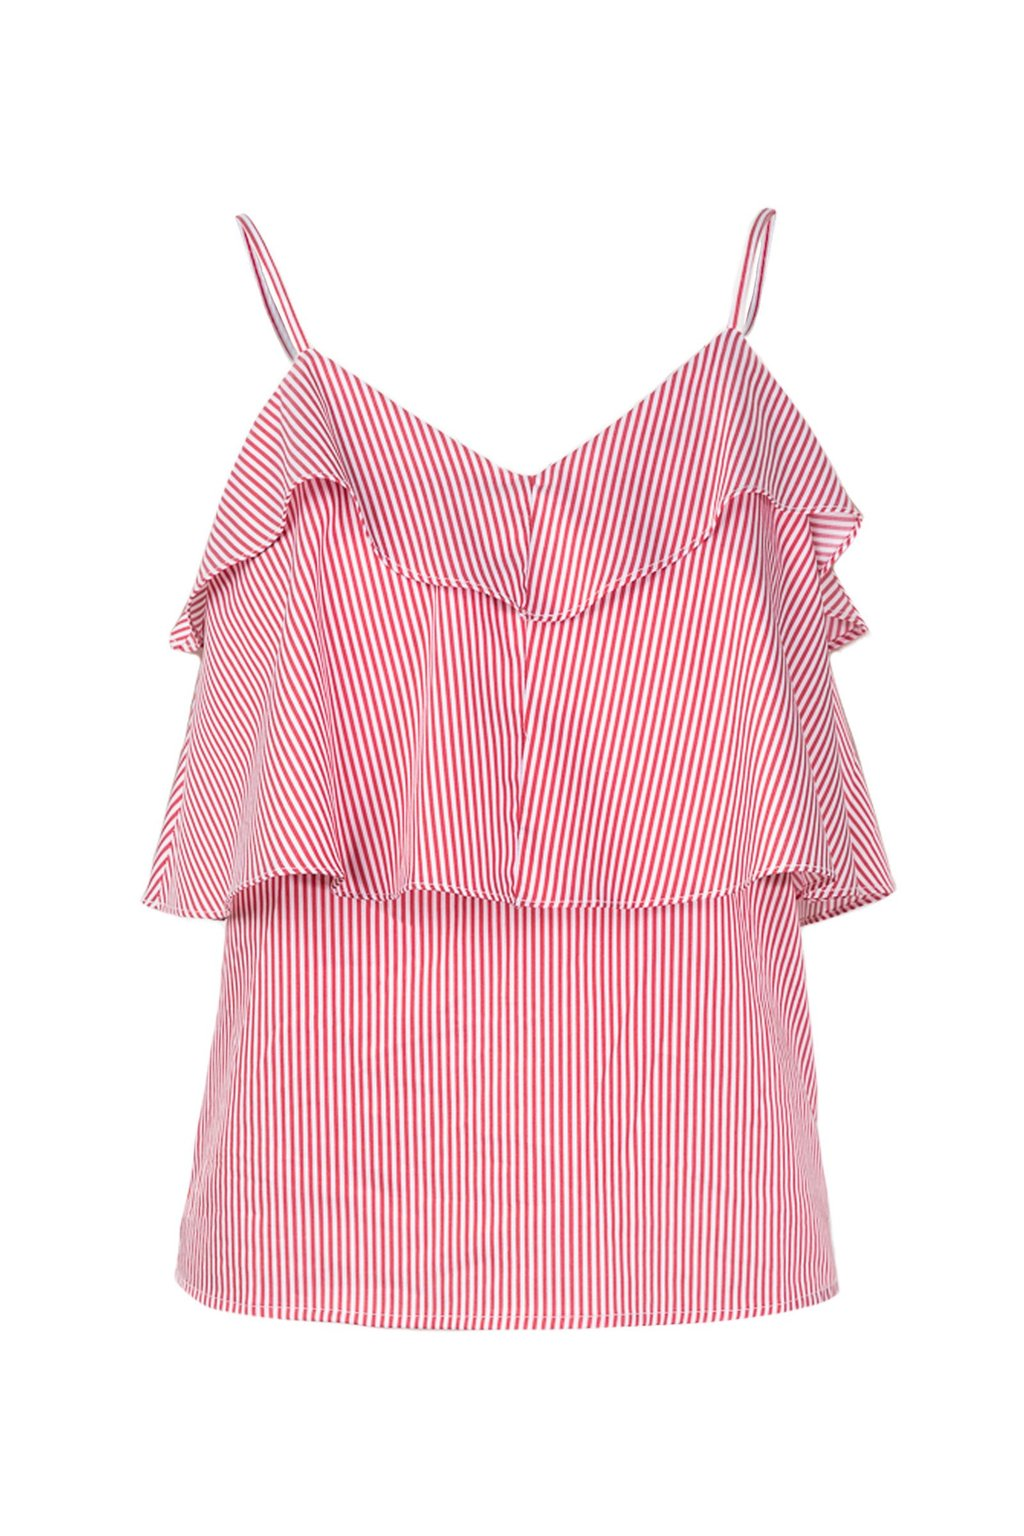 Pink Pia Top by J.ING women's tops